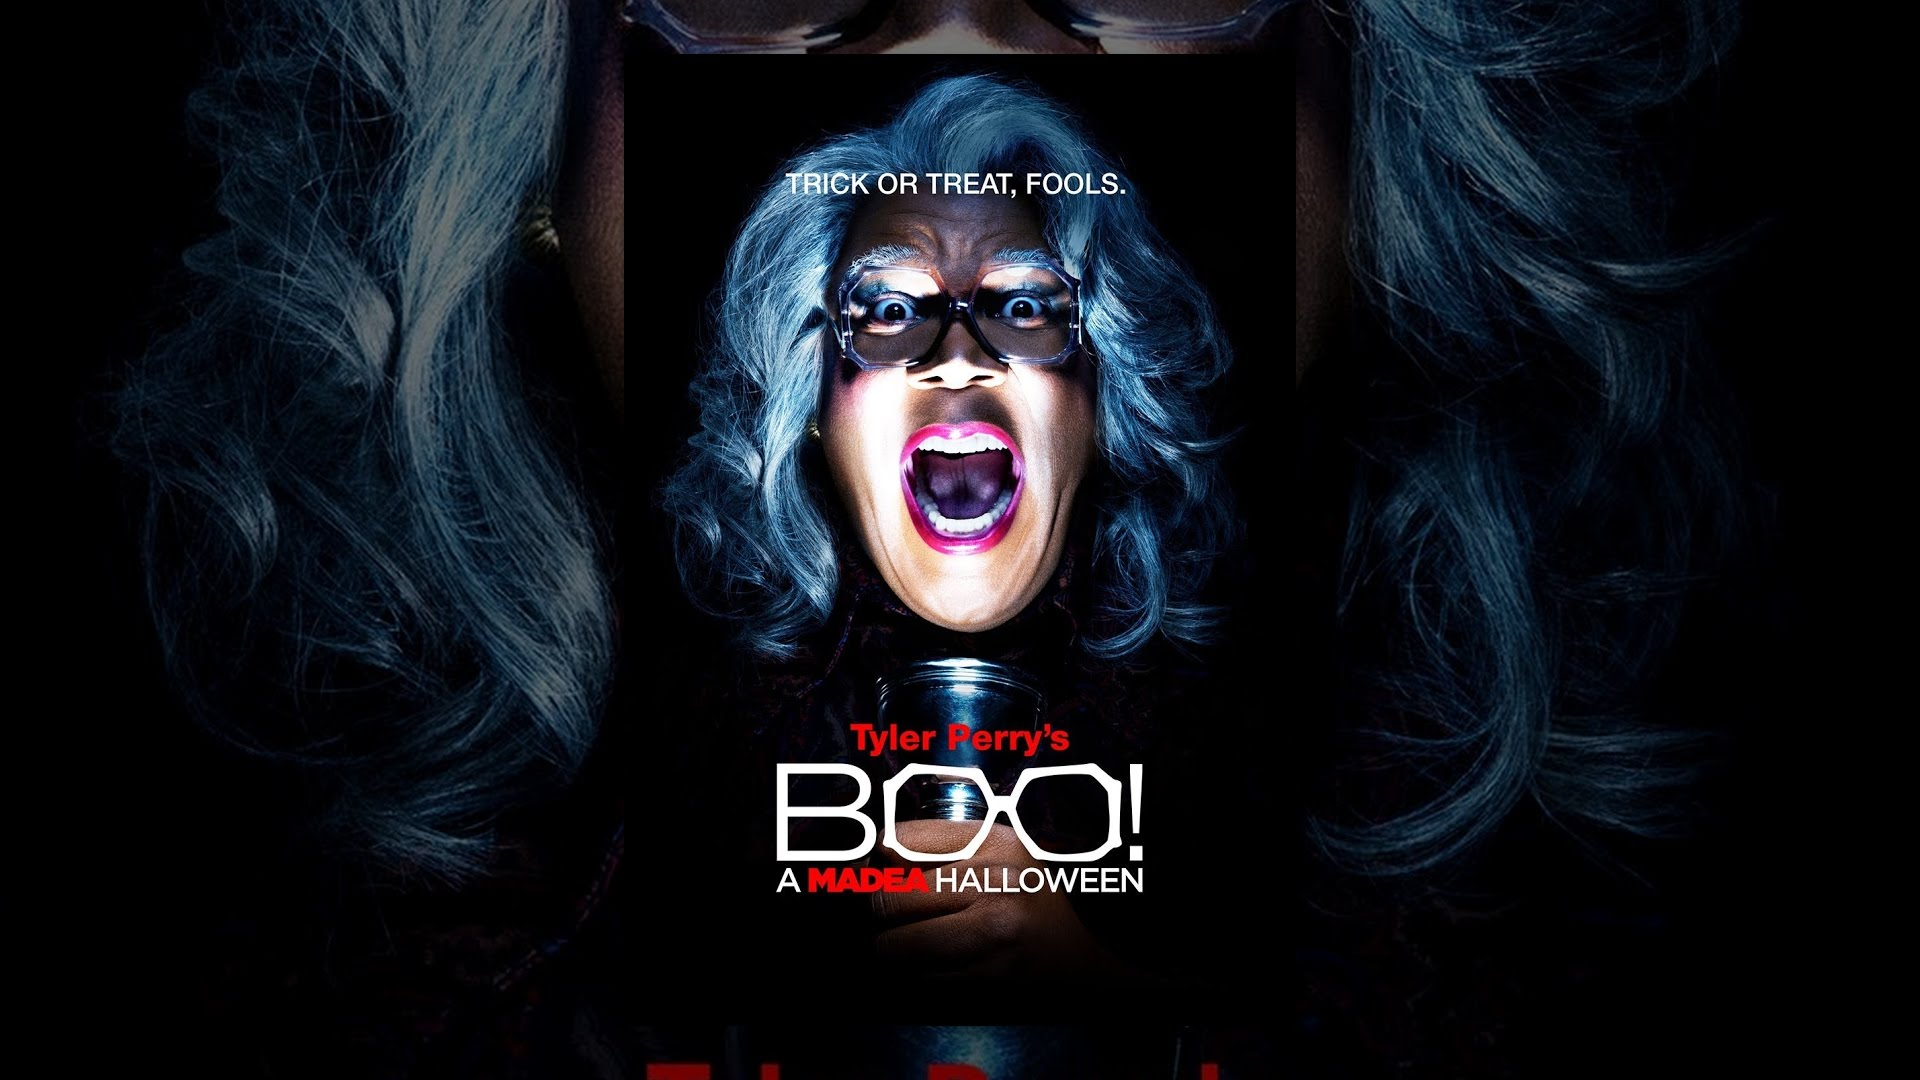 Tyler Perry's Boo! a Madea Halloween - YouTube